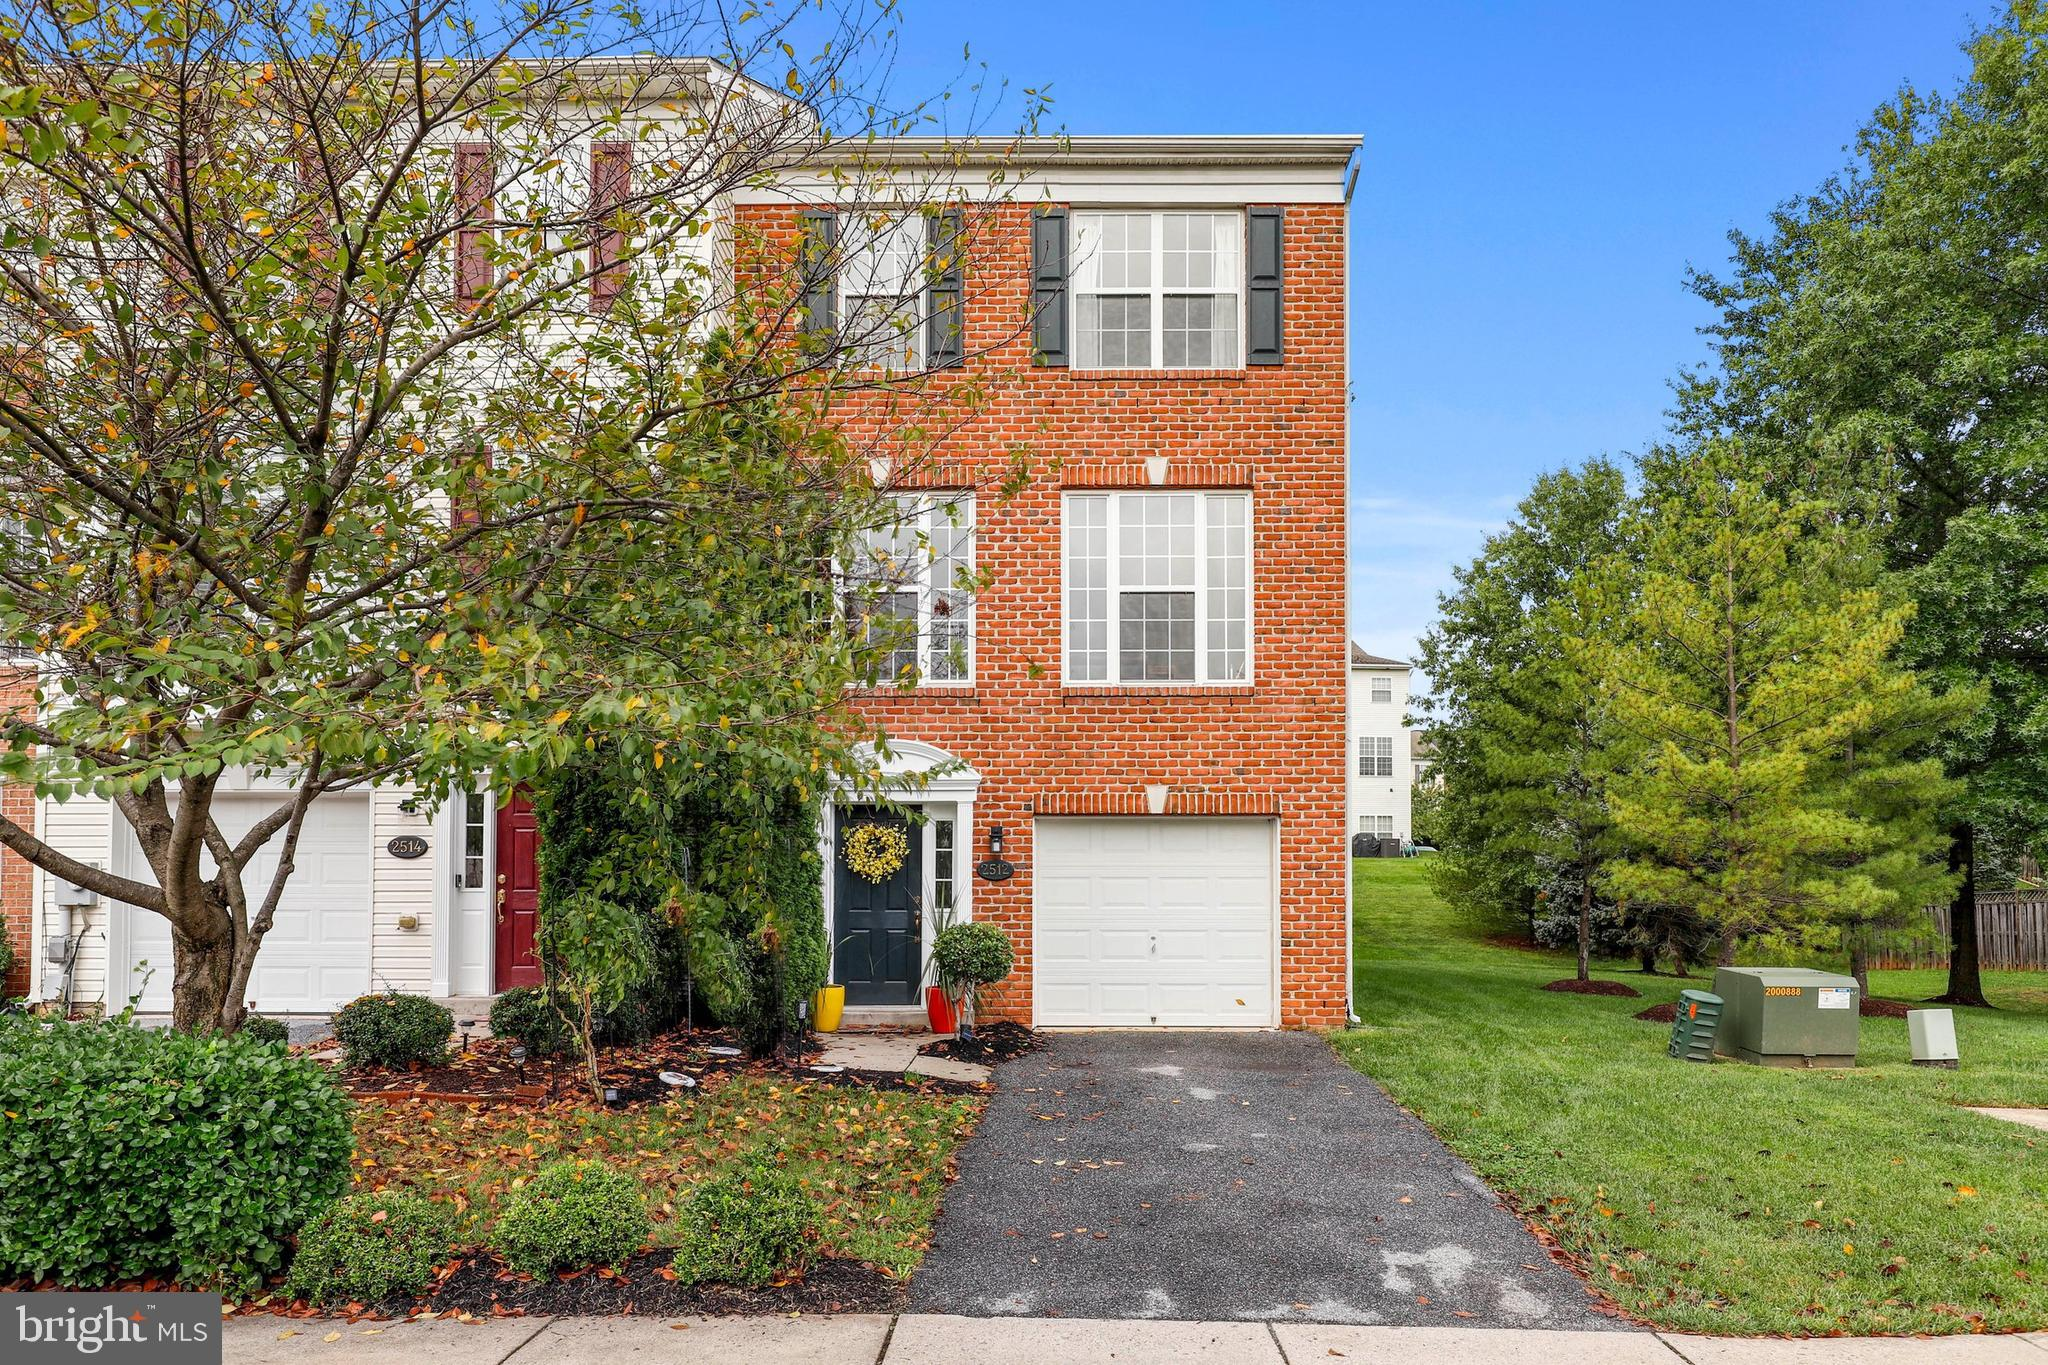 Welcome home! This brick front end unit townhouse is large, filled with natural light and so invitin